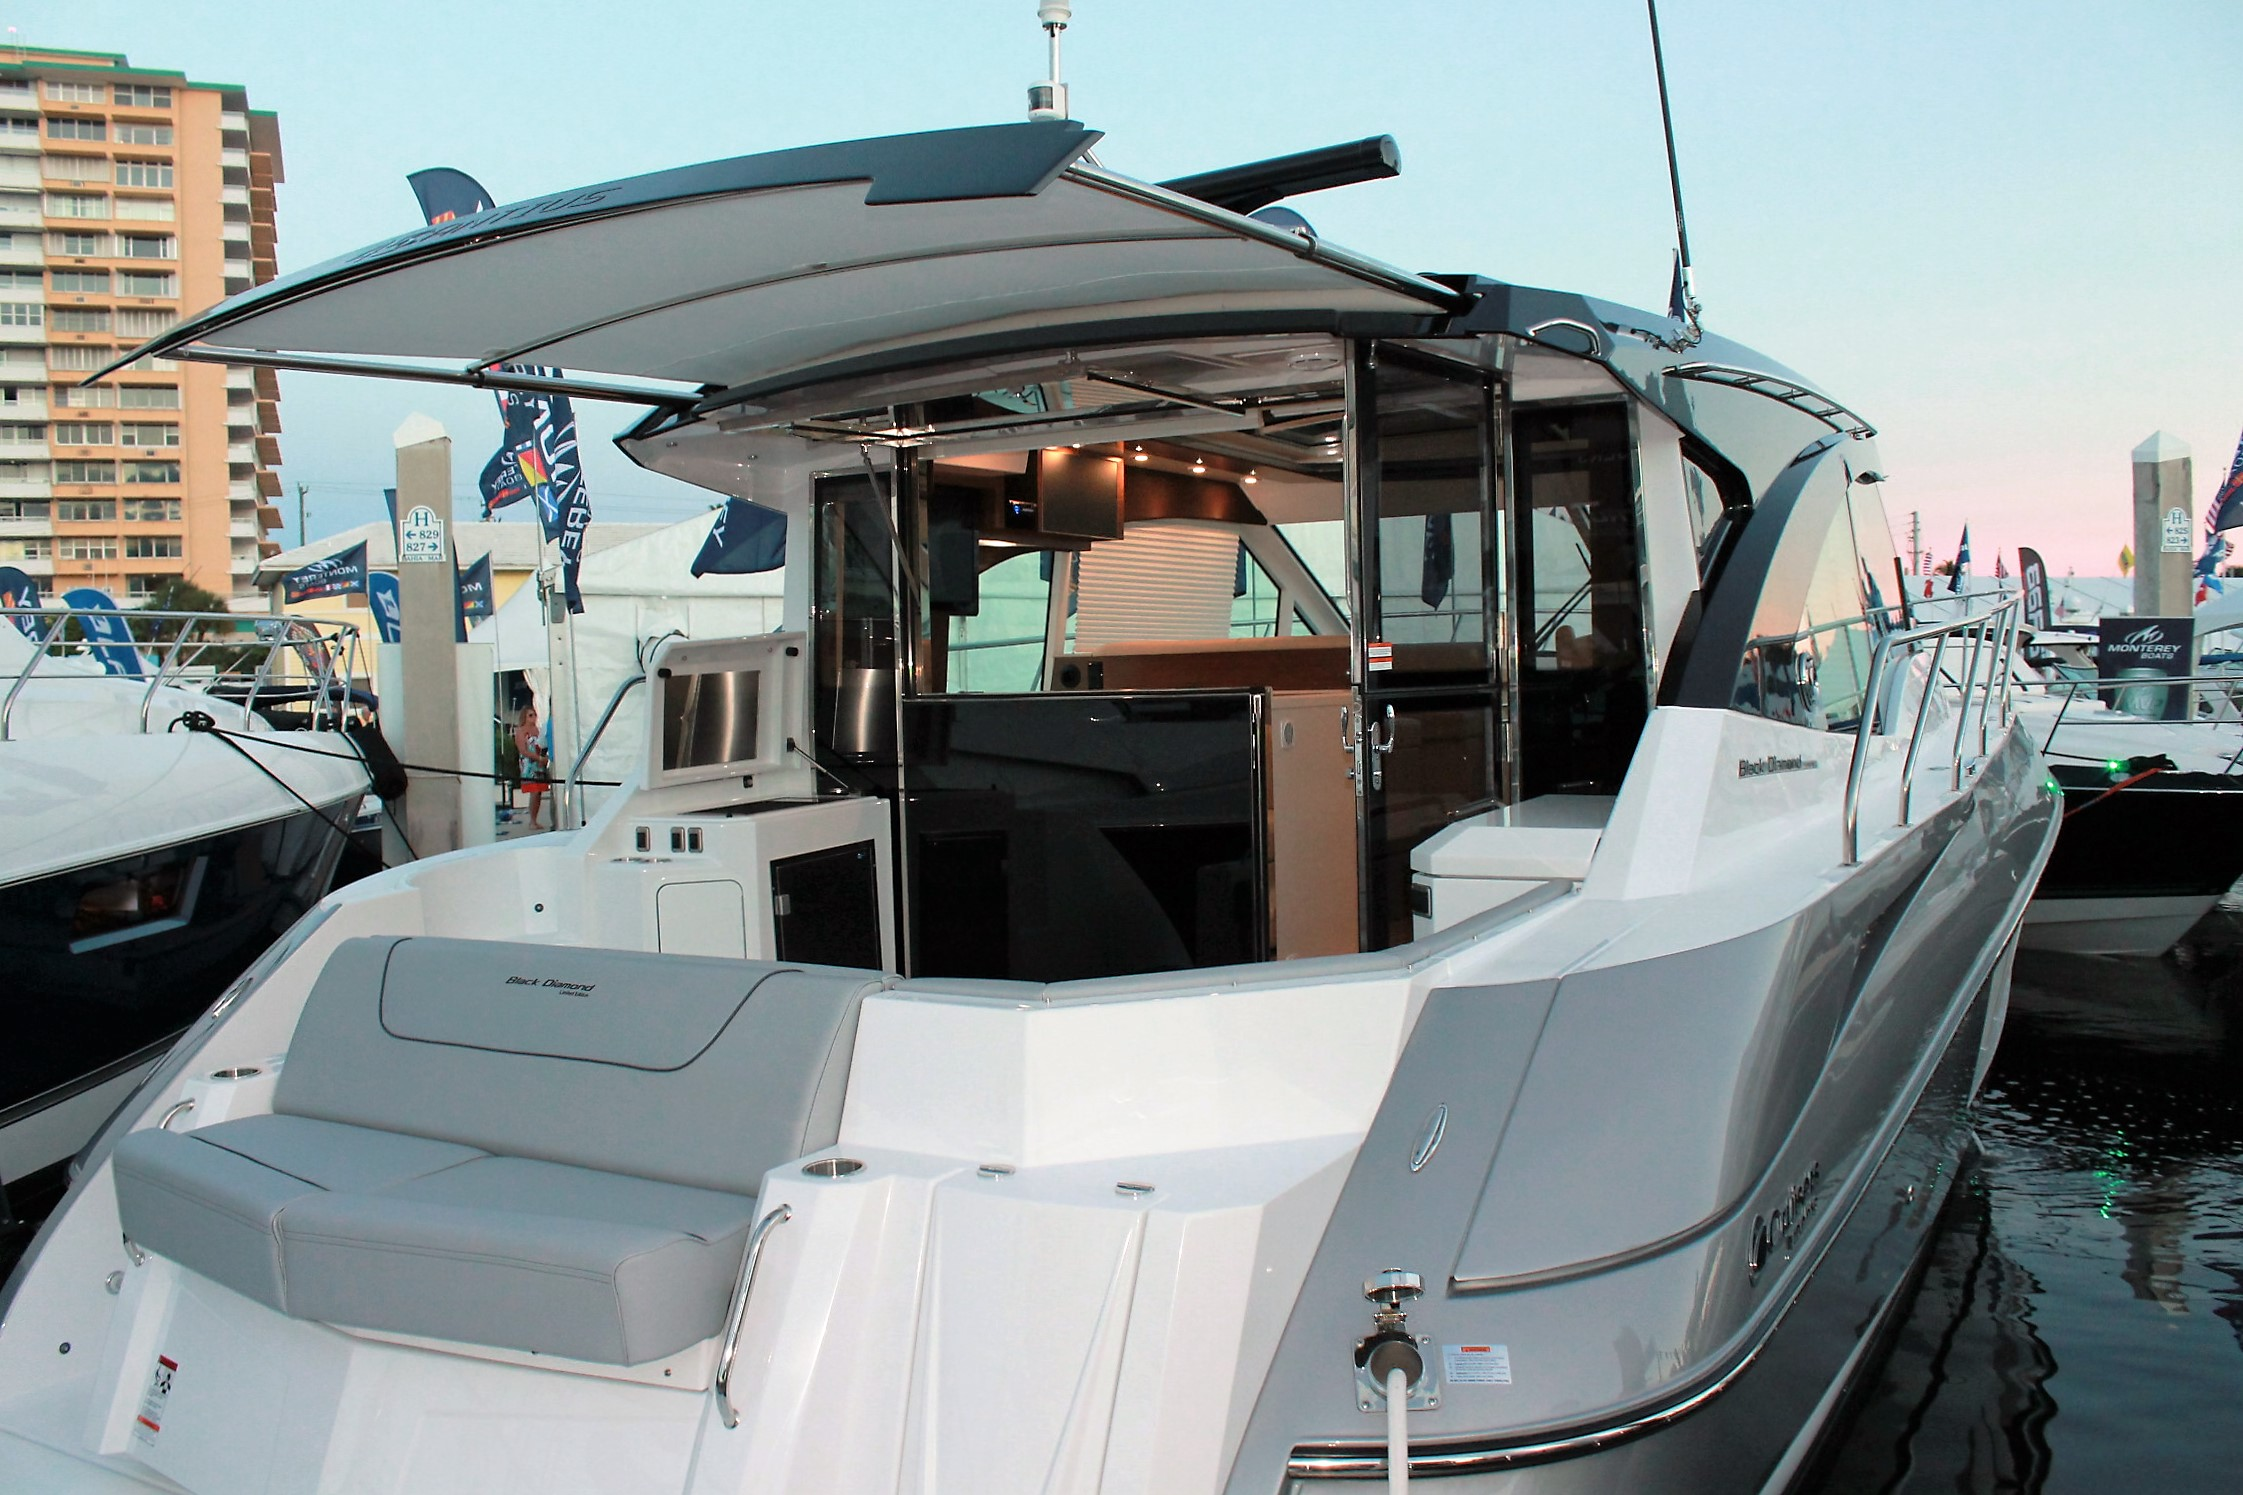 boat new cruisers size full cutty in window sold cabins cabin augu item auction